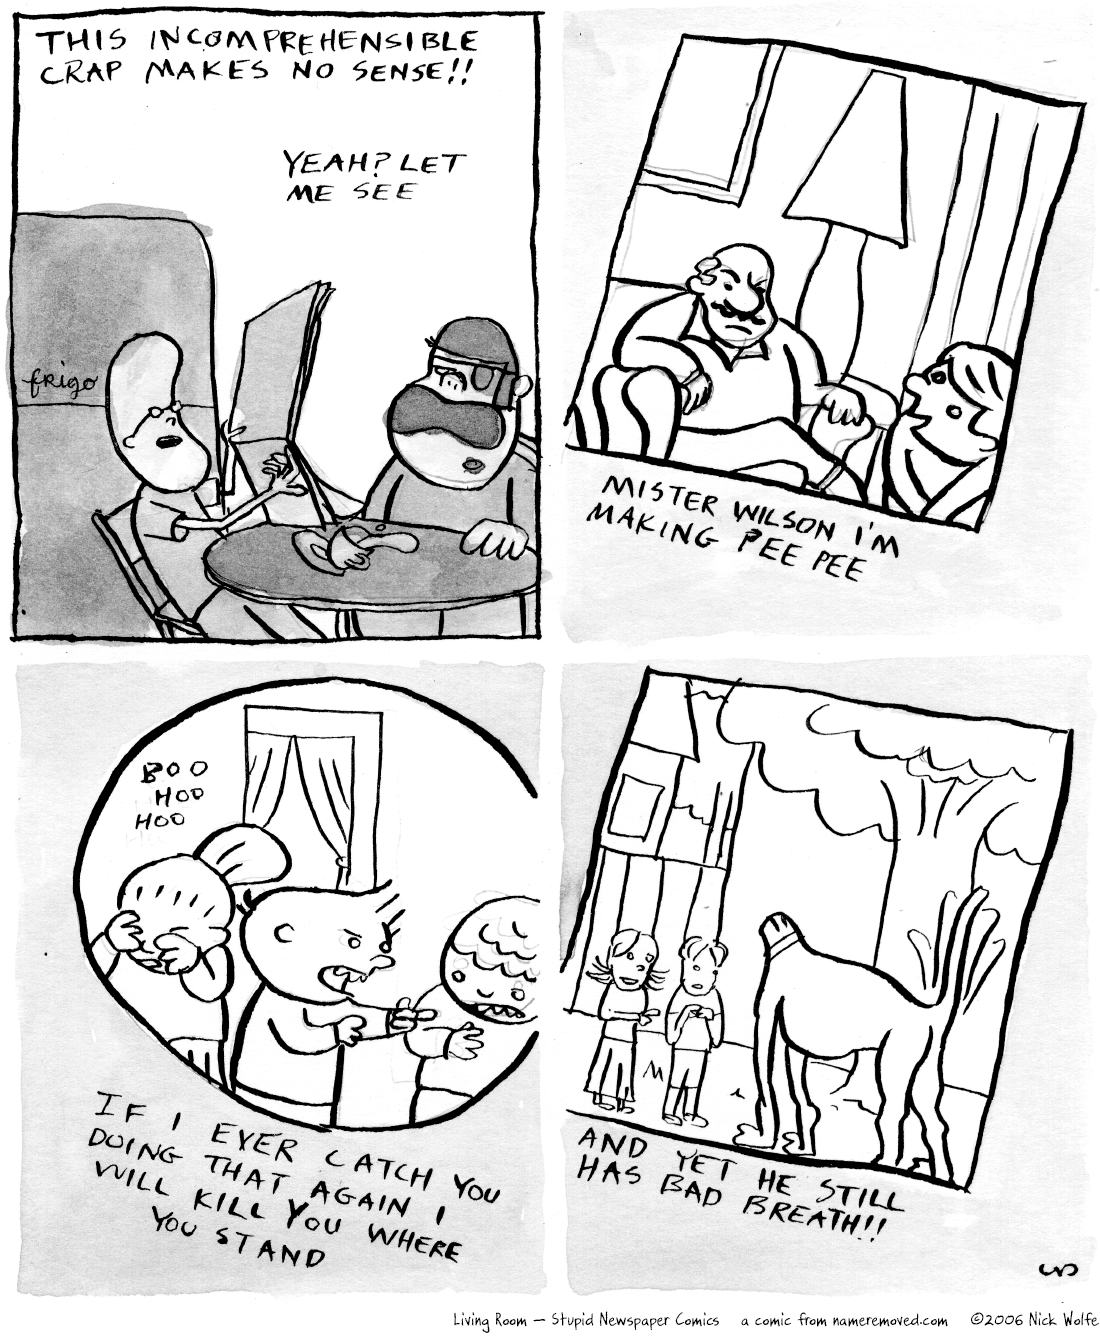 Living Room - Stupid Newspaper Comics